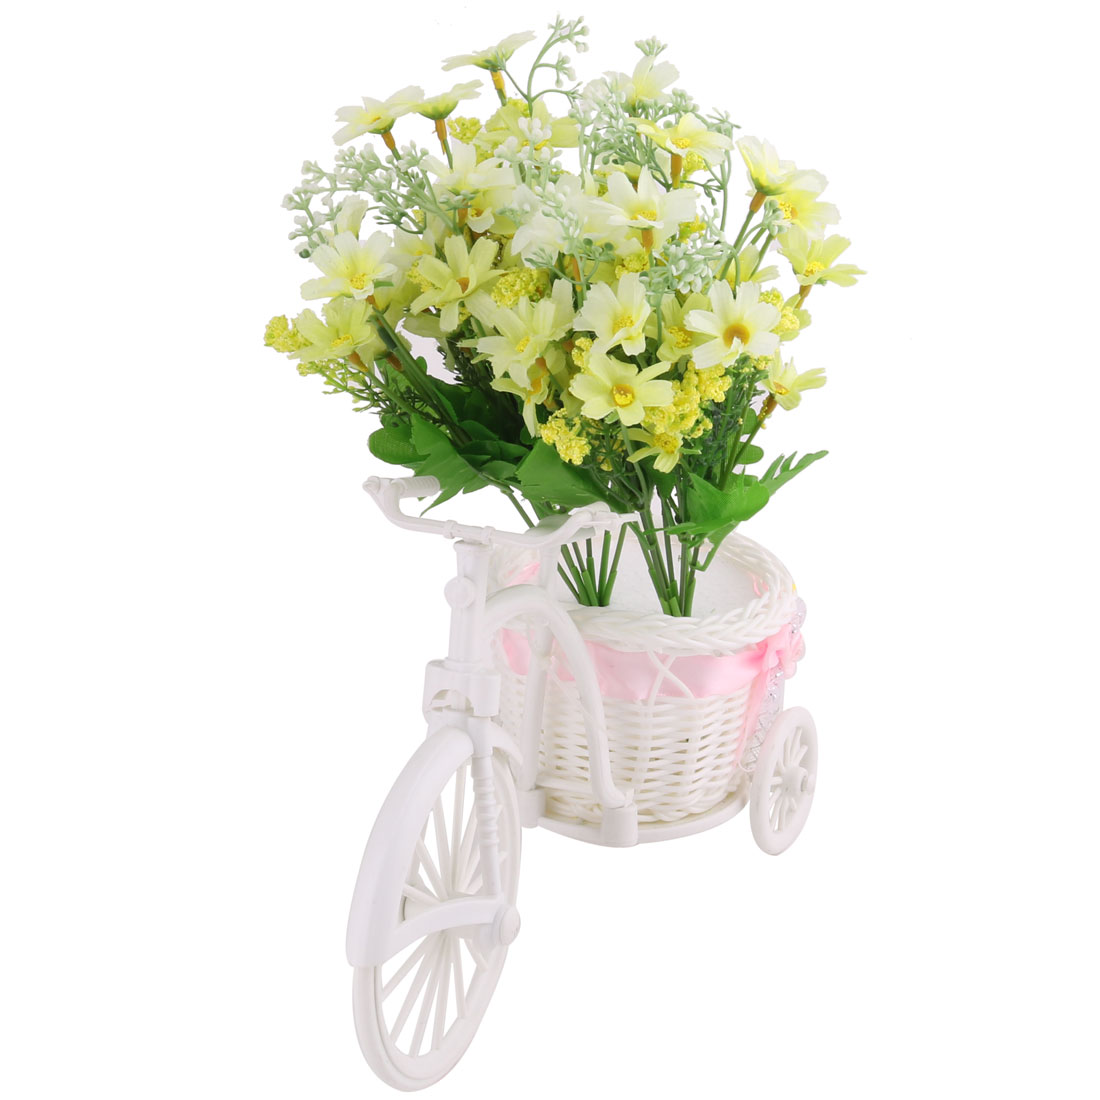 Party Plastic Tricycle Holder DIY Craft Decorative Artificial Simulation Flower Light Yellow